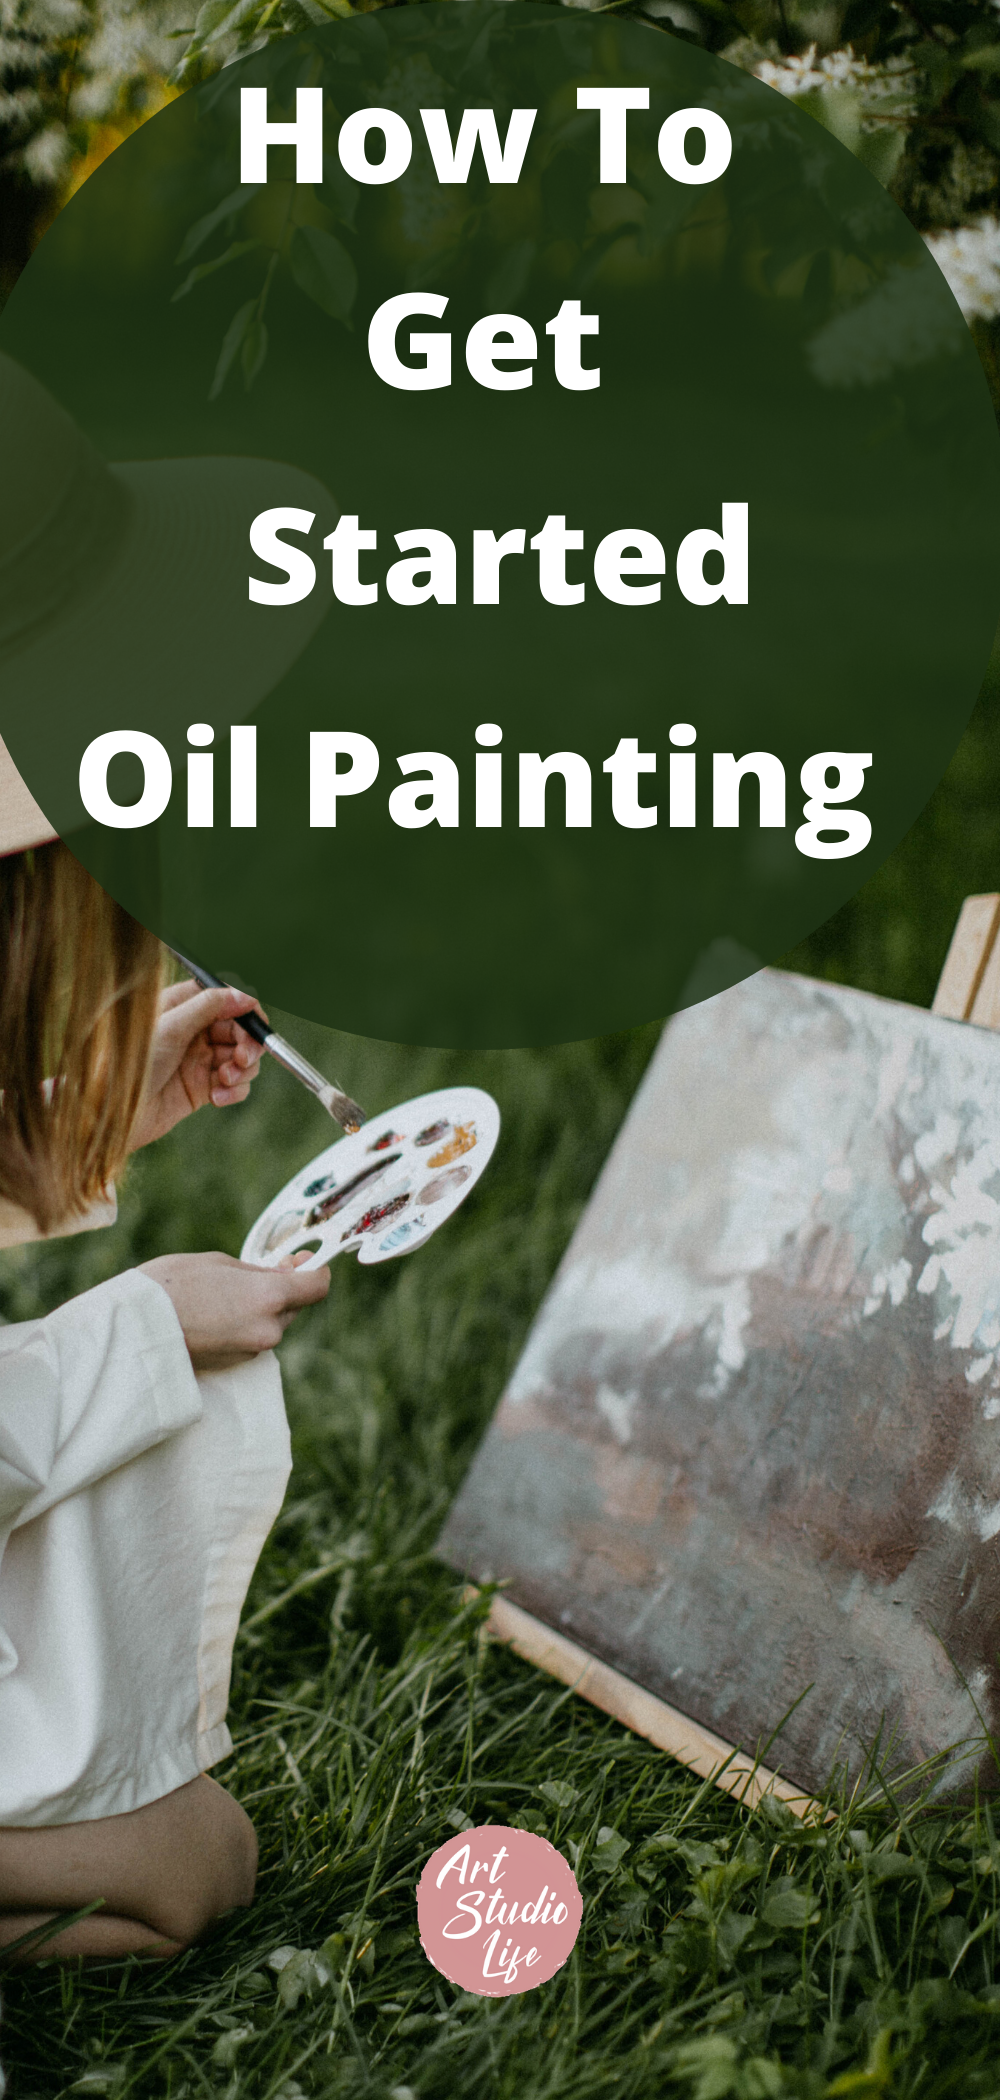 How to get started oil painting! A beginners guide to oil painting and how to get started. Oil painting for beginners. Ultimate beginners painting guide. Learn how to paint. #howtostartoilpainting #beginnersoilpaintingguide #oilpaintingforbeginners #oilpainting #oilpaintingguide